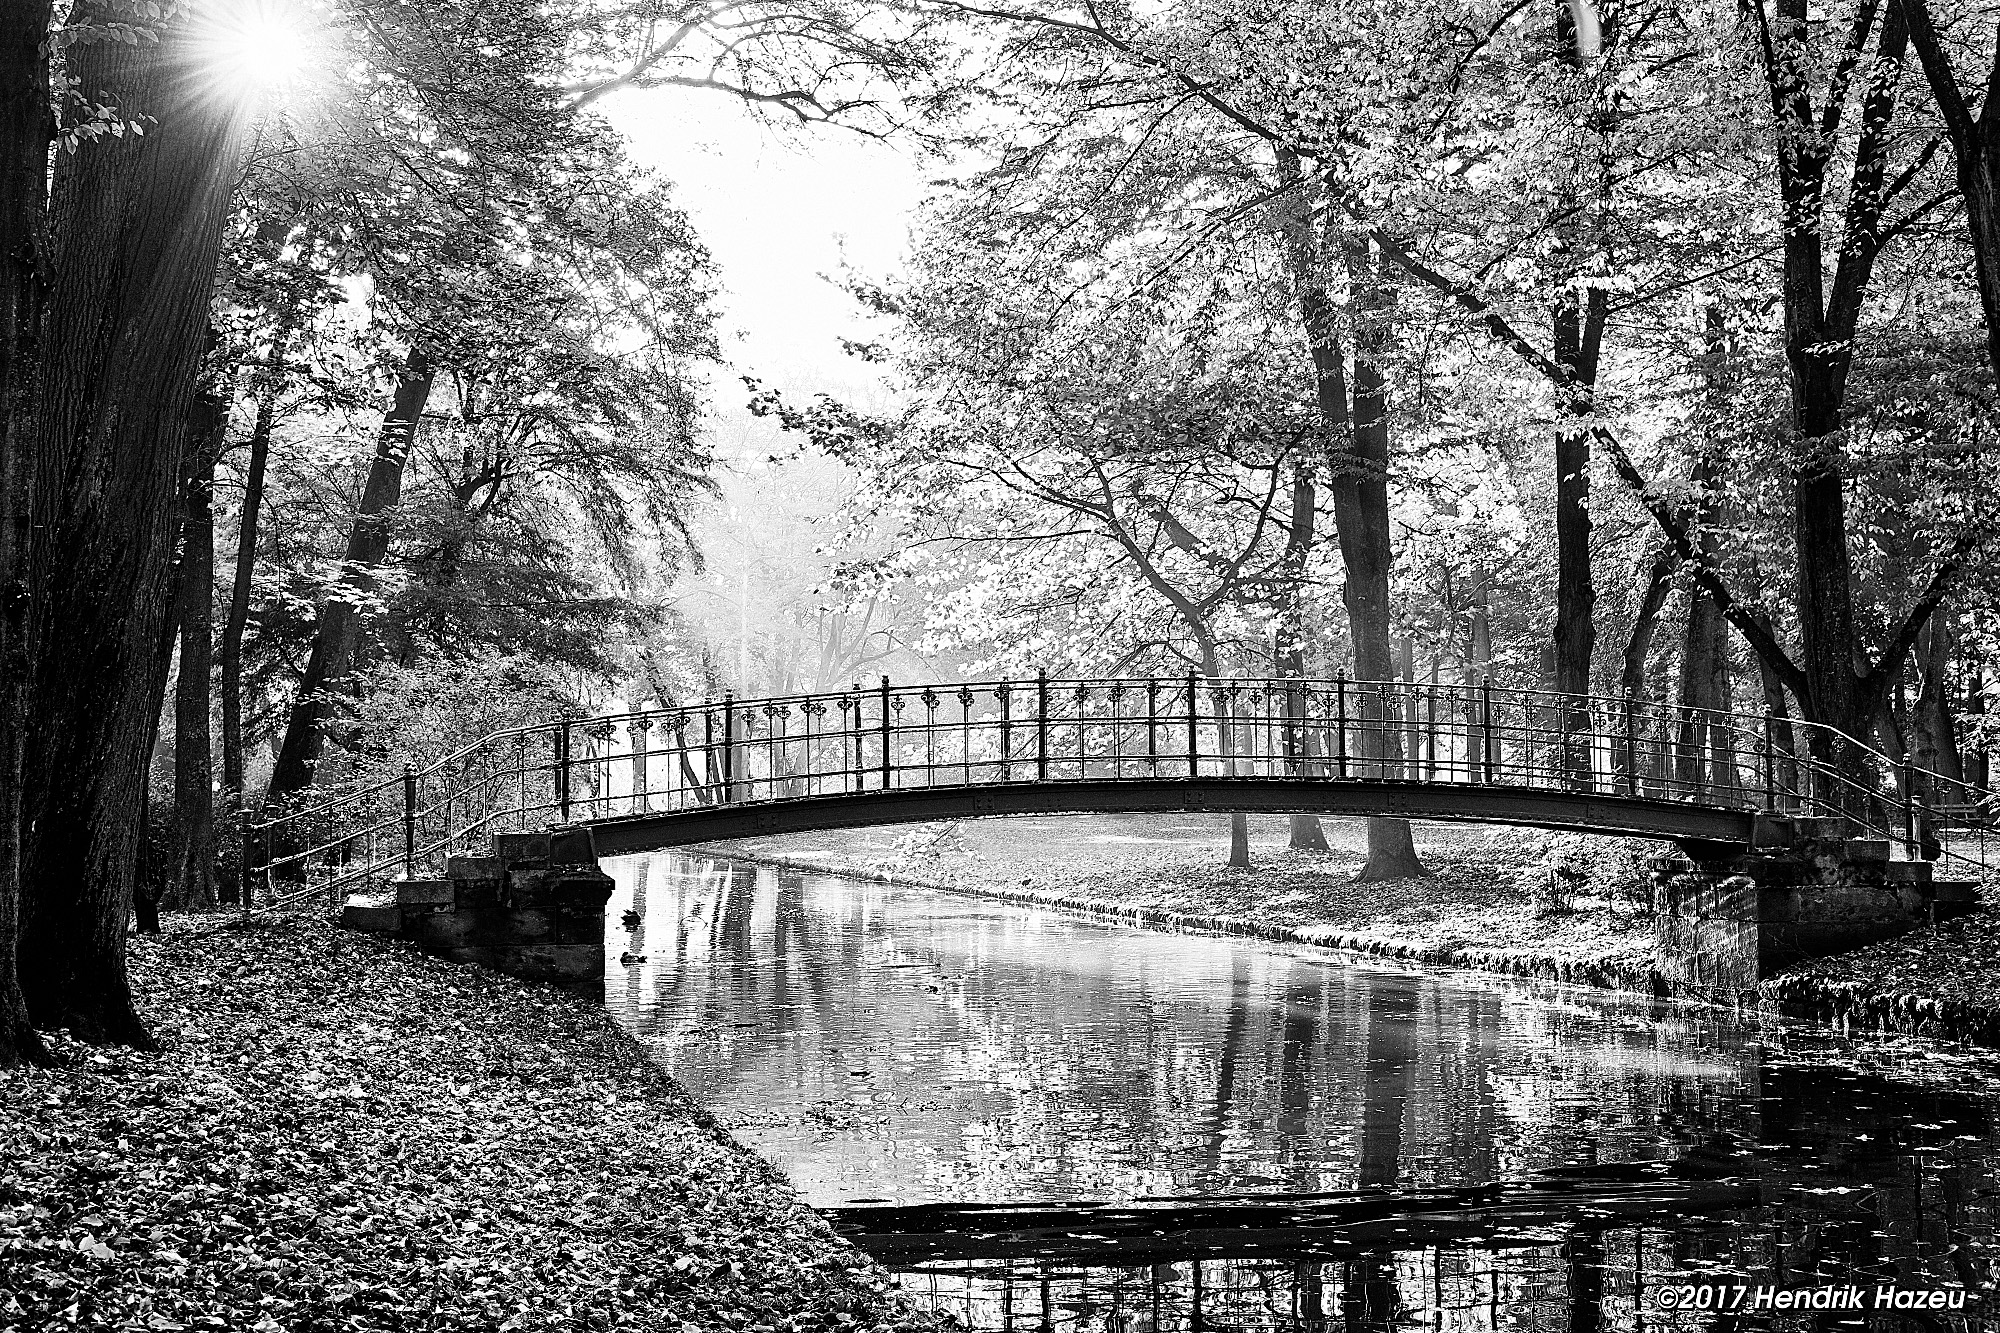 Bridge in the Park, with XF 35/2 on X-Pro2, Capture One 10 with modified BW-15 Style